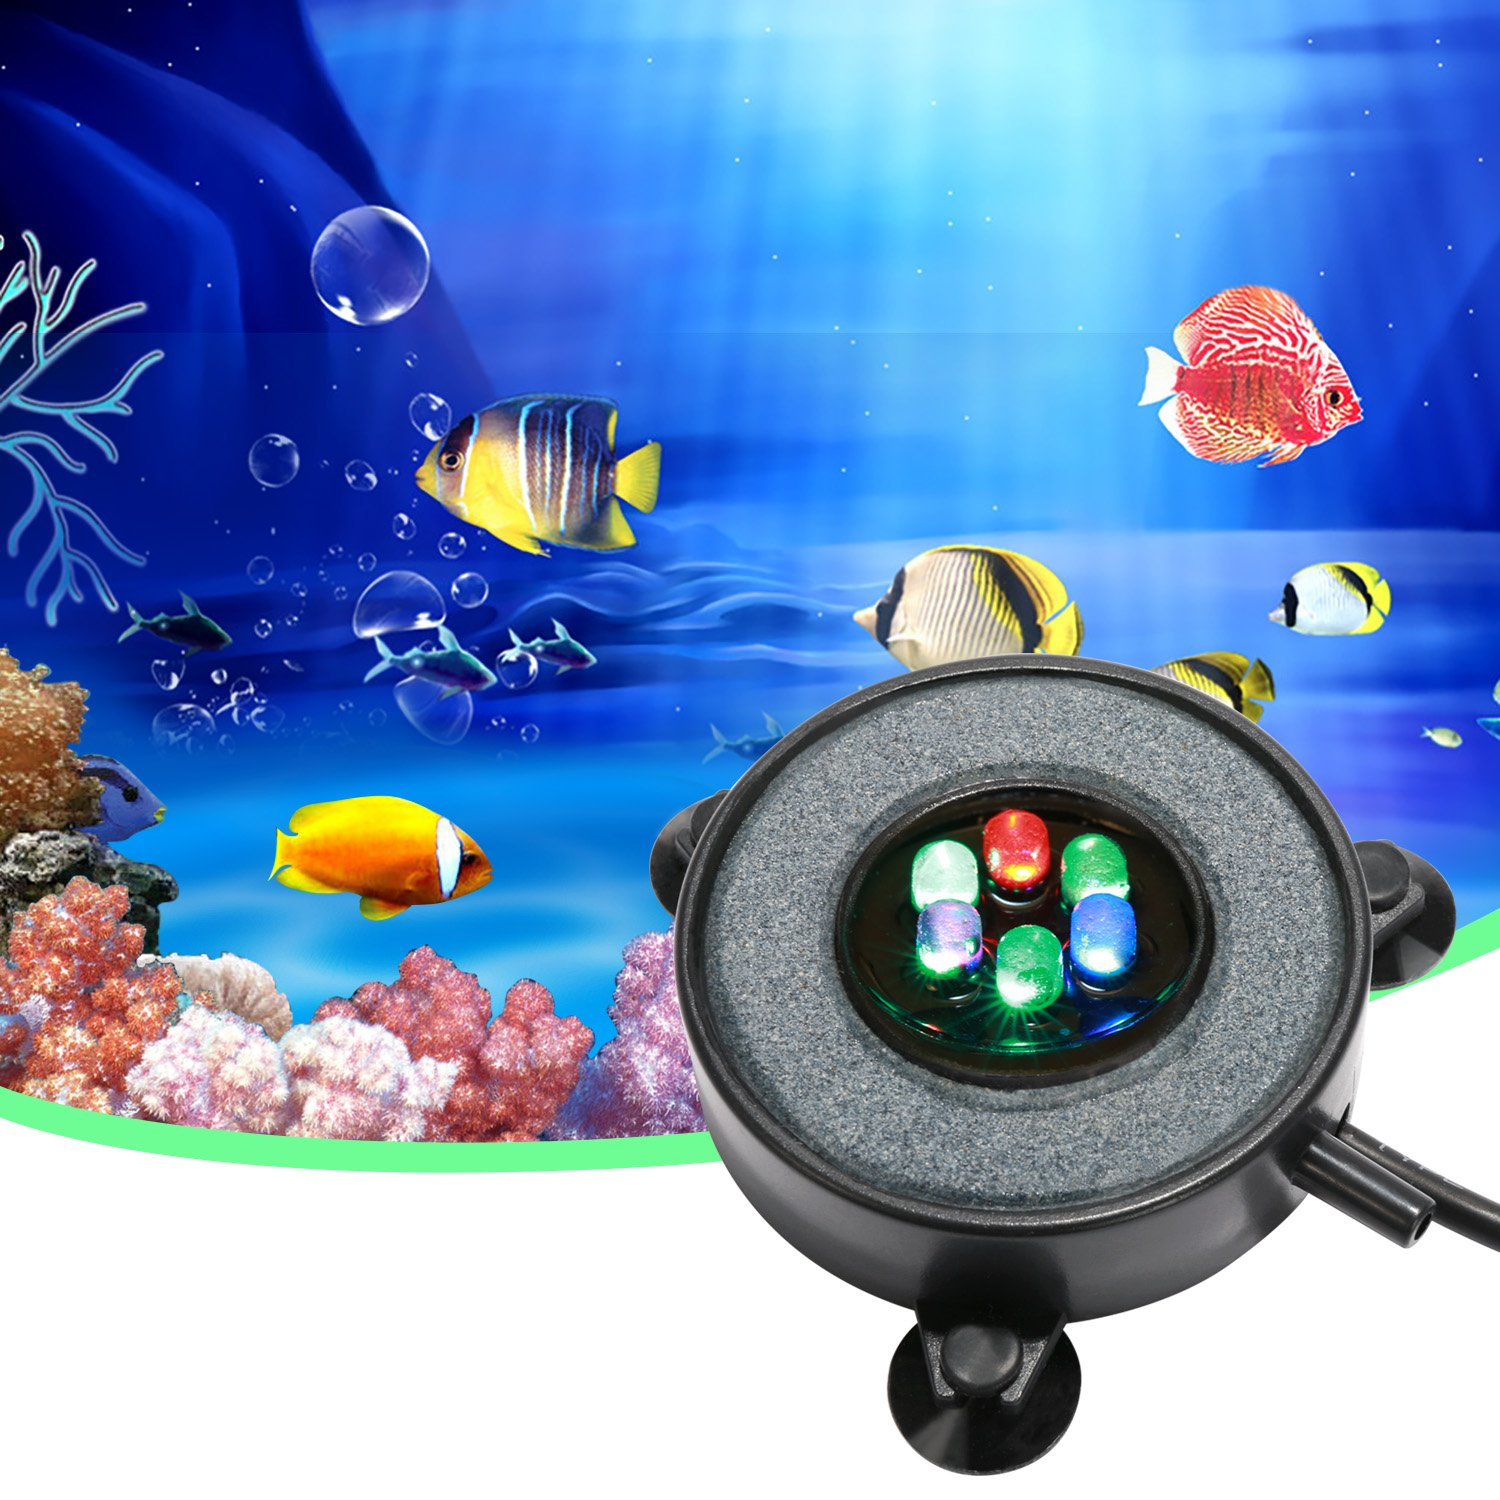 Supmaker Aquarium Air Stone Fish Tank Led Air Stone Bubble Light with 6 Color Changing LEDs for Aquarium